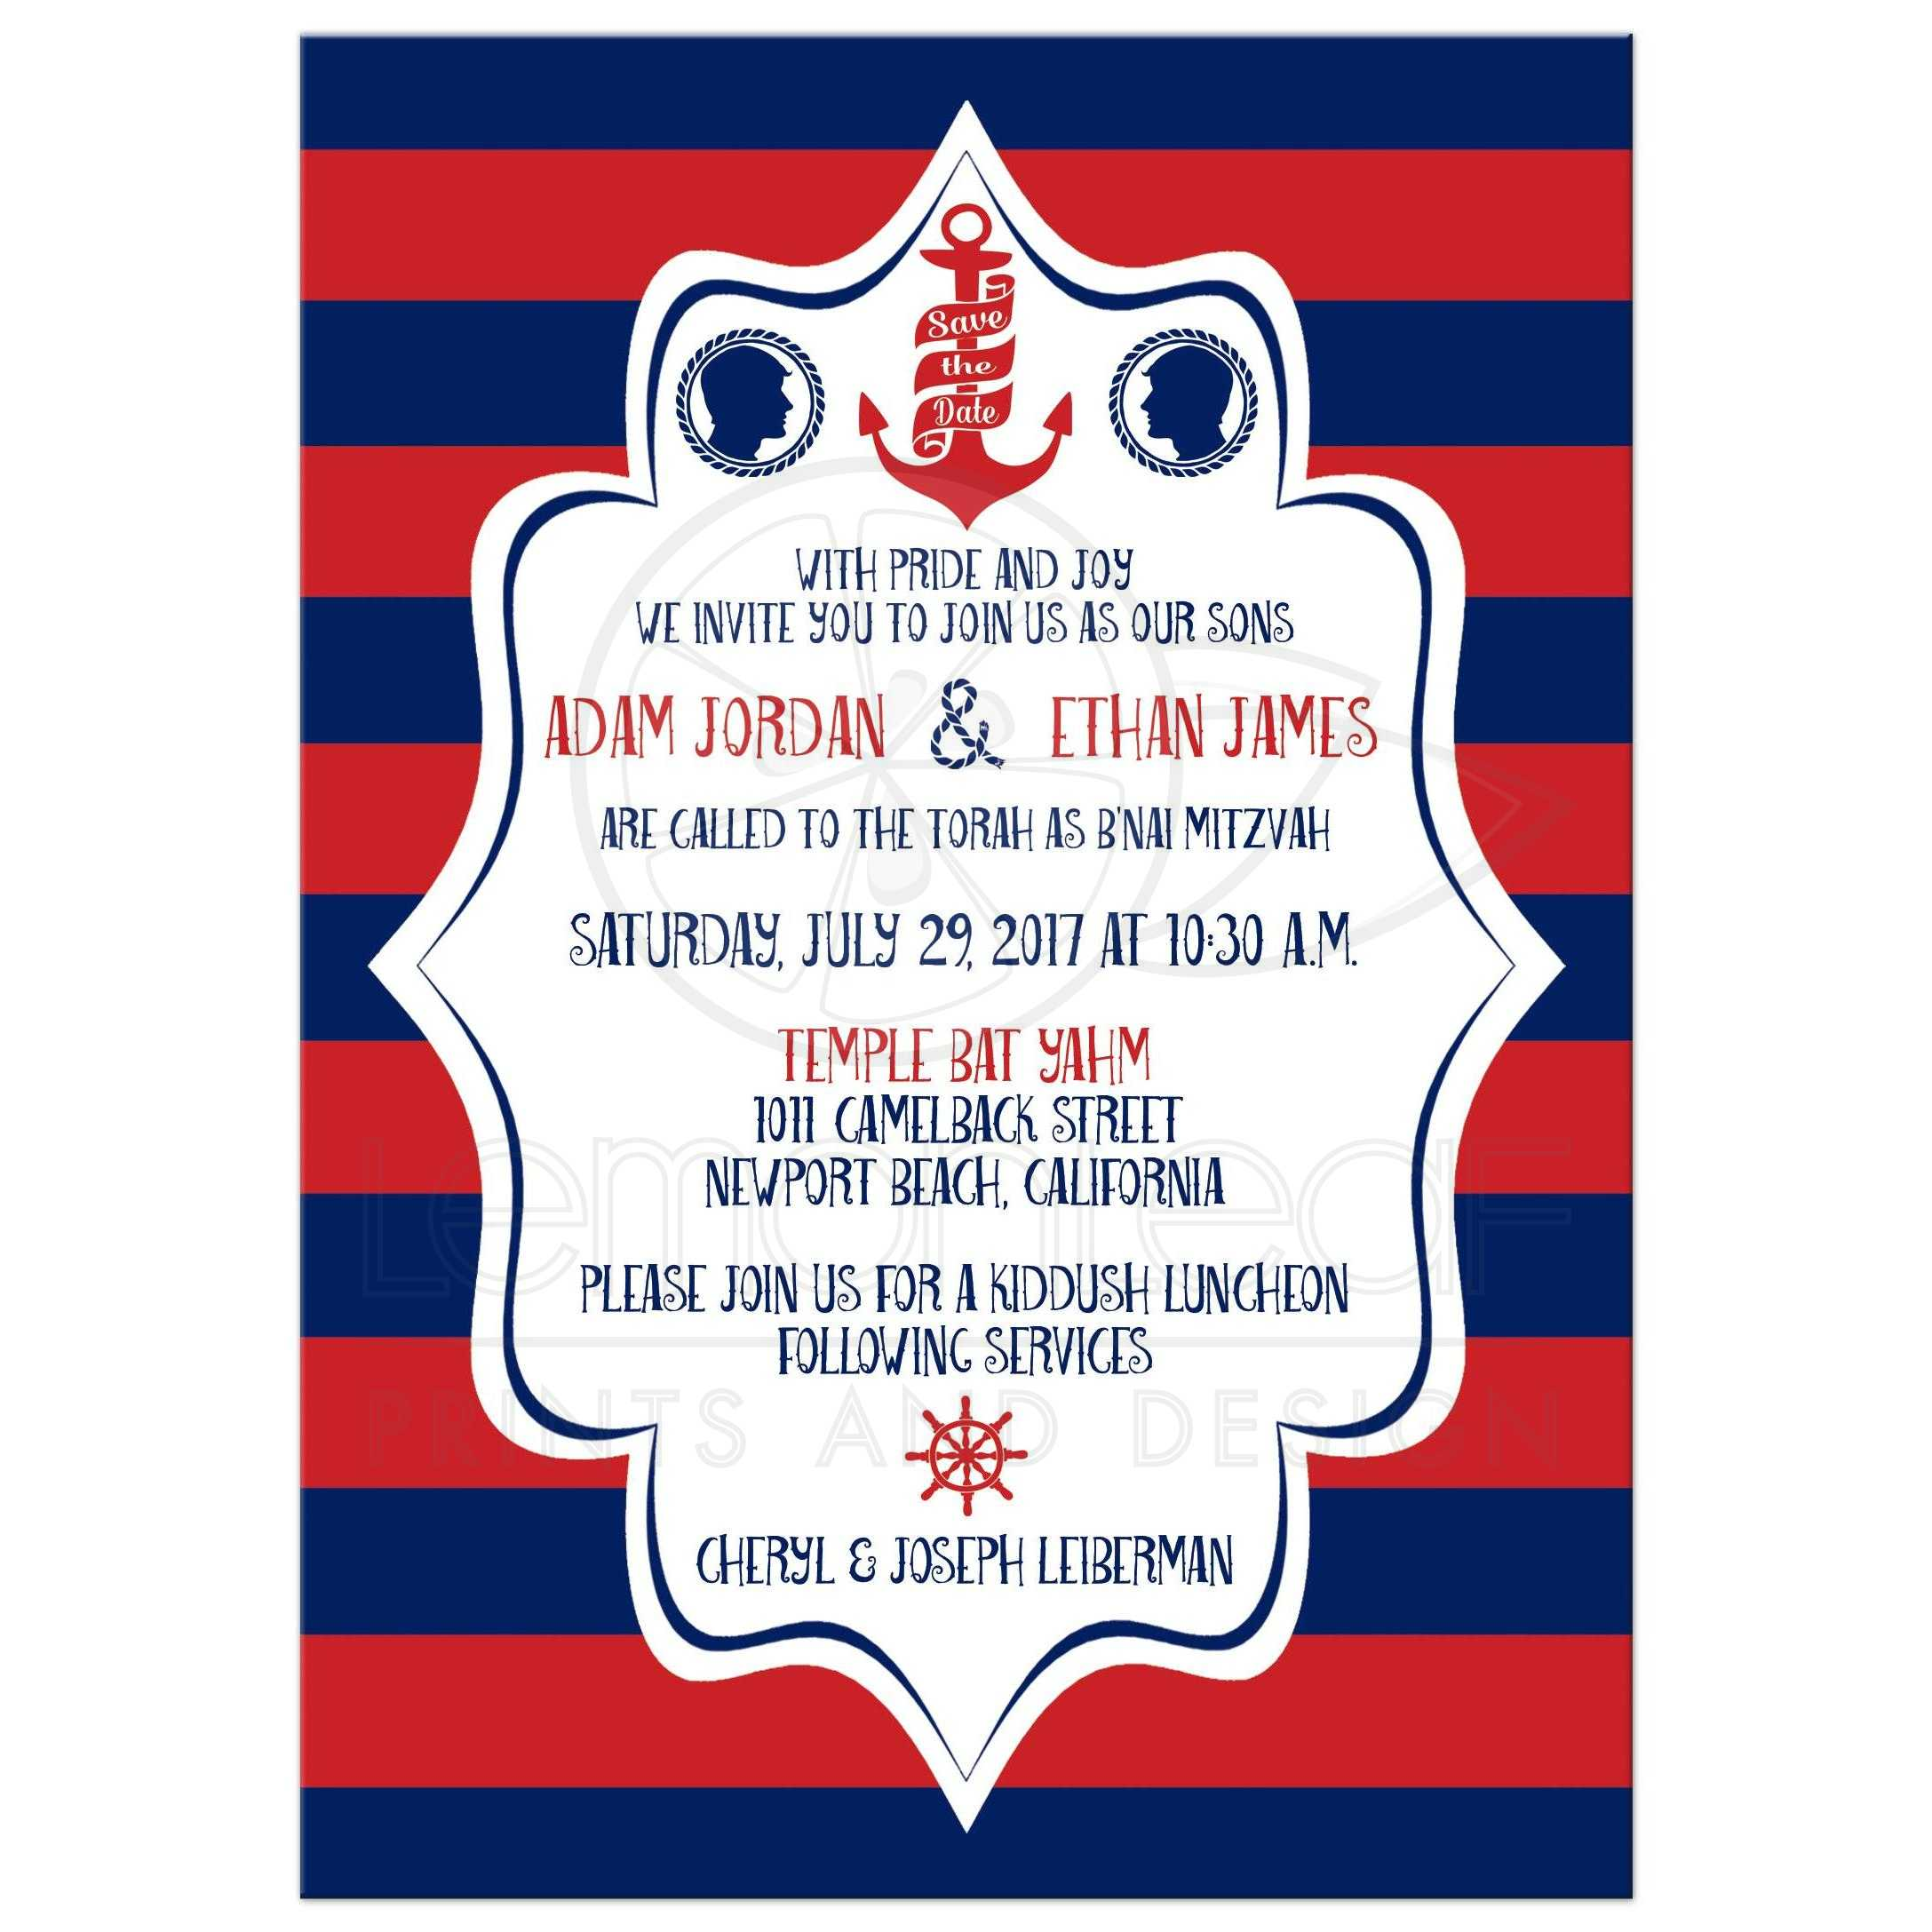 b nai mitzvah invitation nautical stripes in red and navy blue